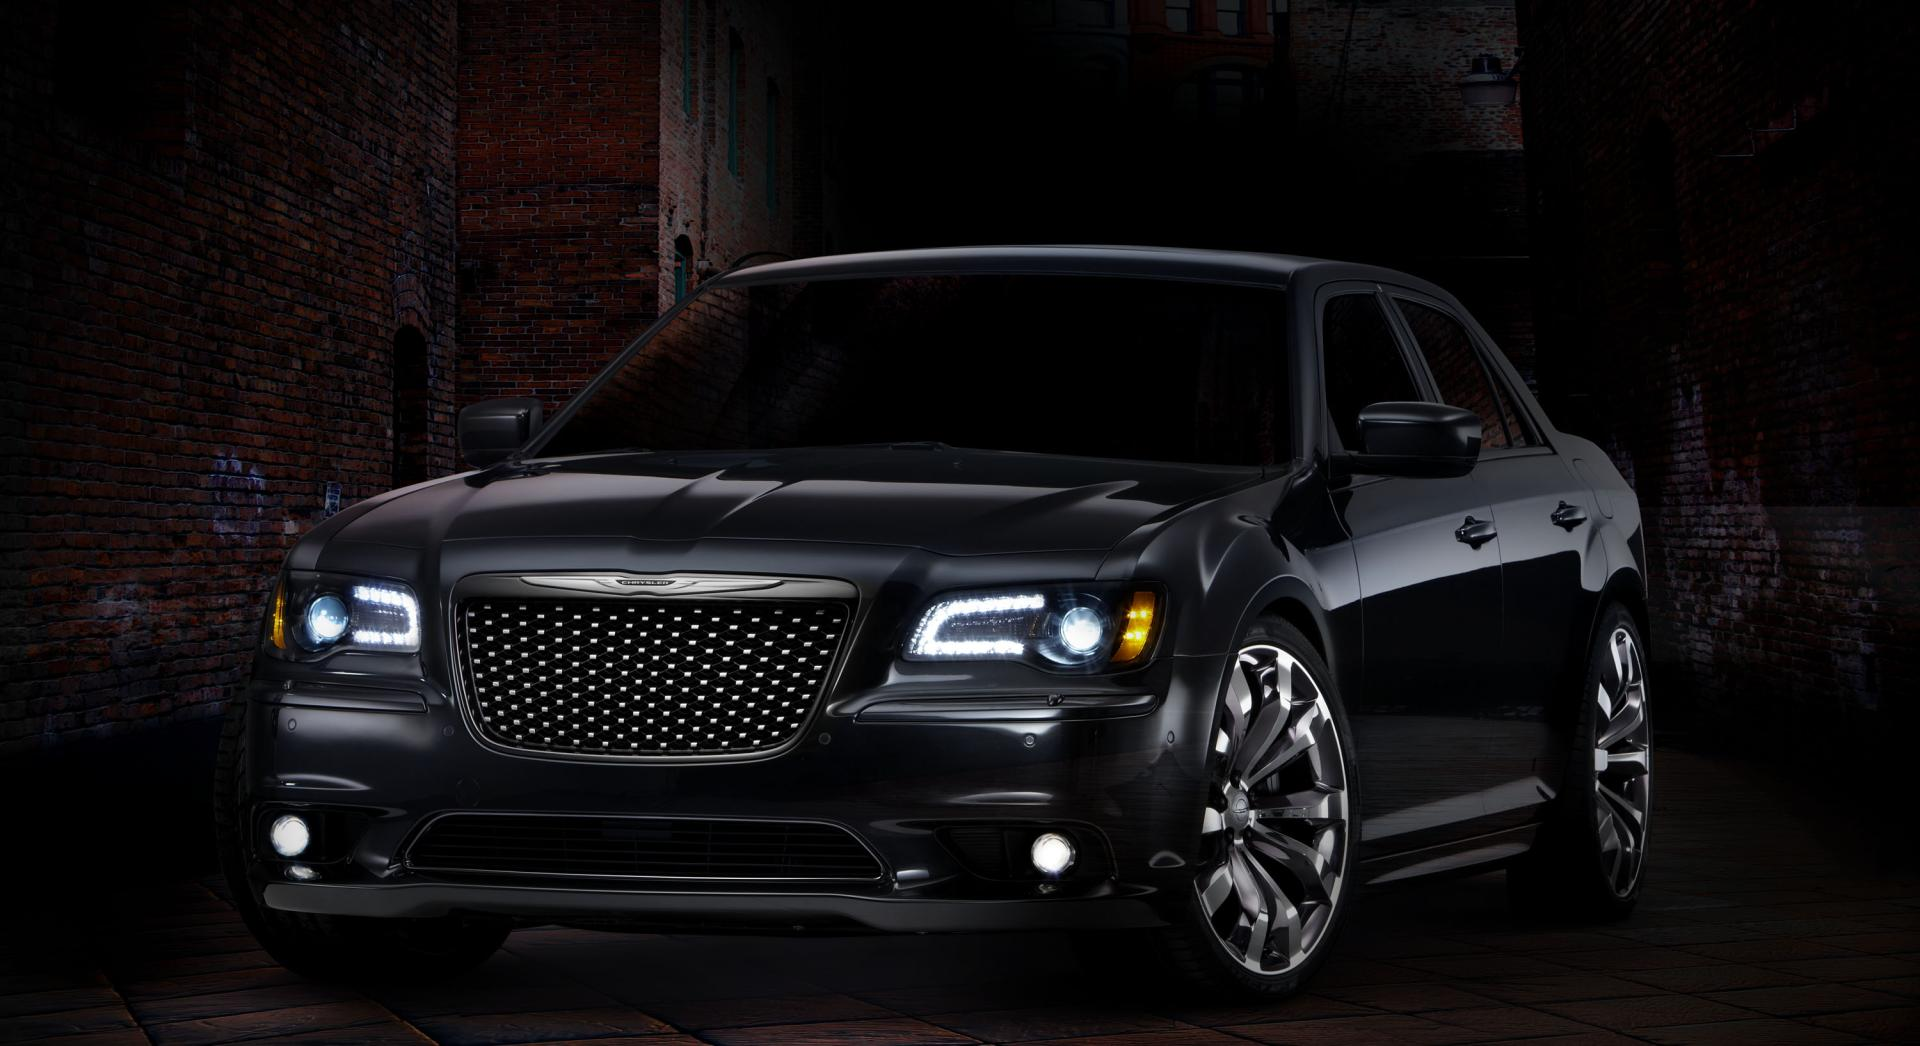 2012 chrysler 300 ruyi design concept news and information  research  and history